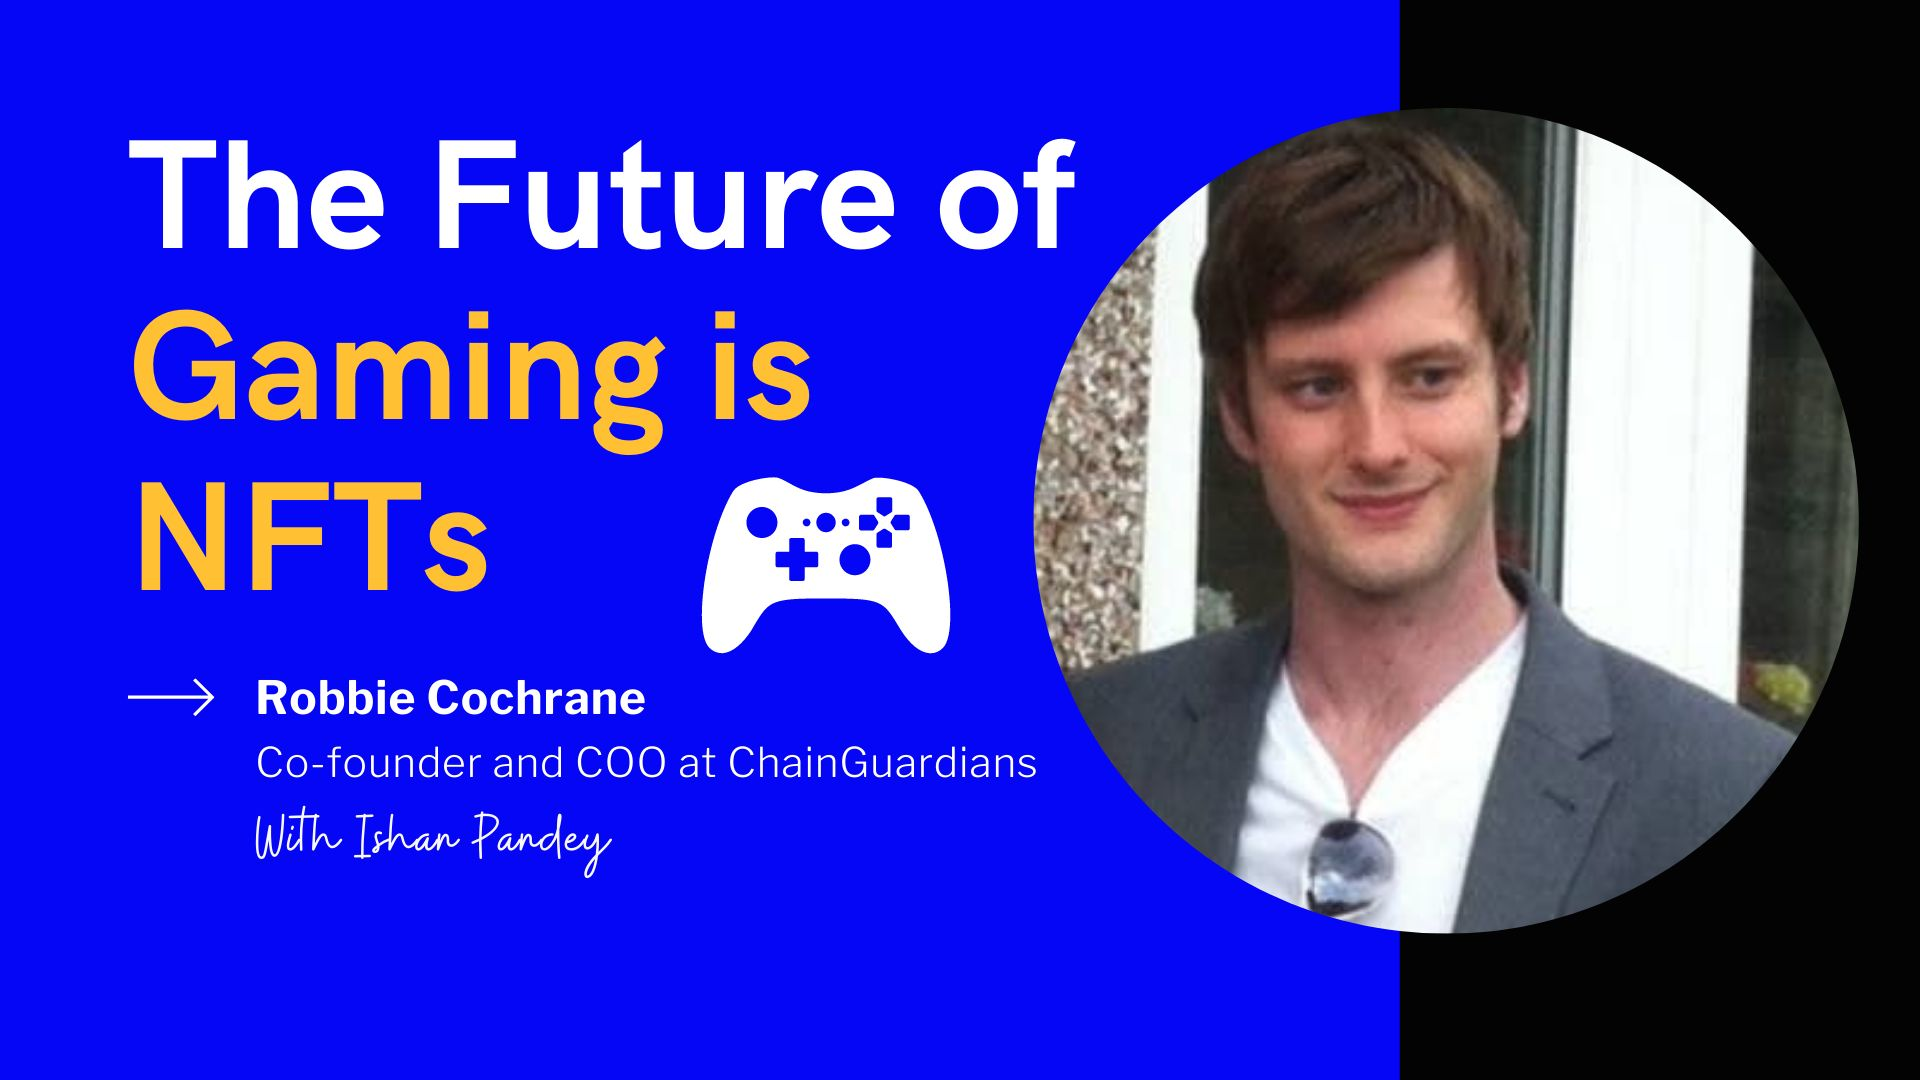 /the-future-of-gaming-is-nfts-robbie-cochrane-co-founder-of-chainguardians-2qp33y6 feature image